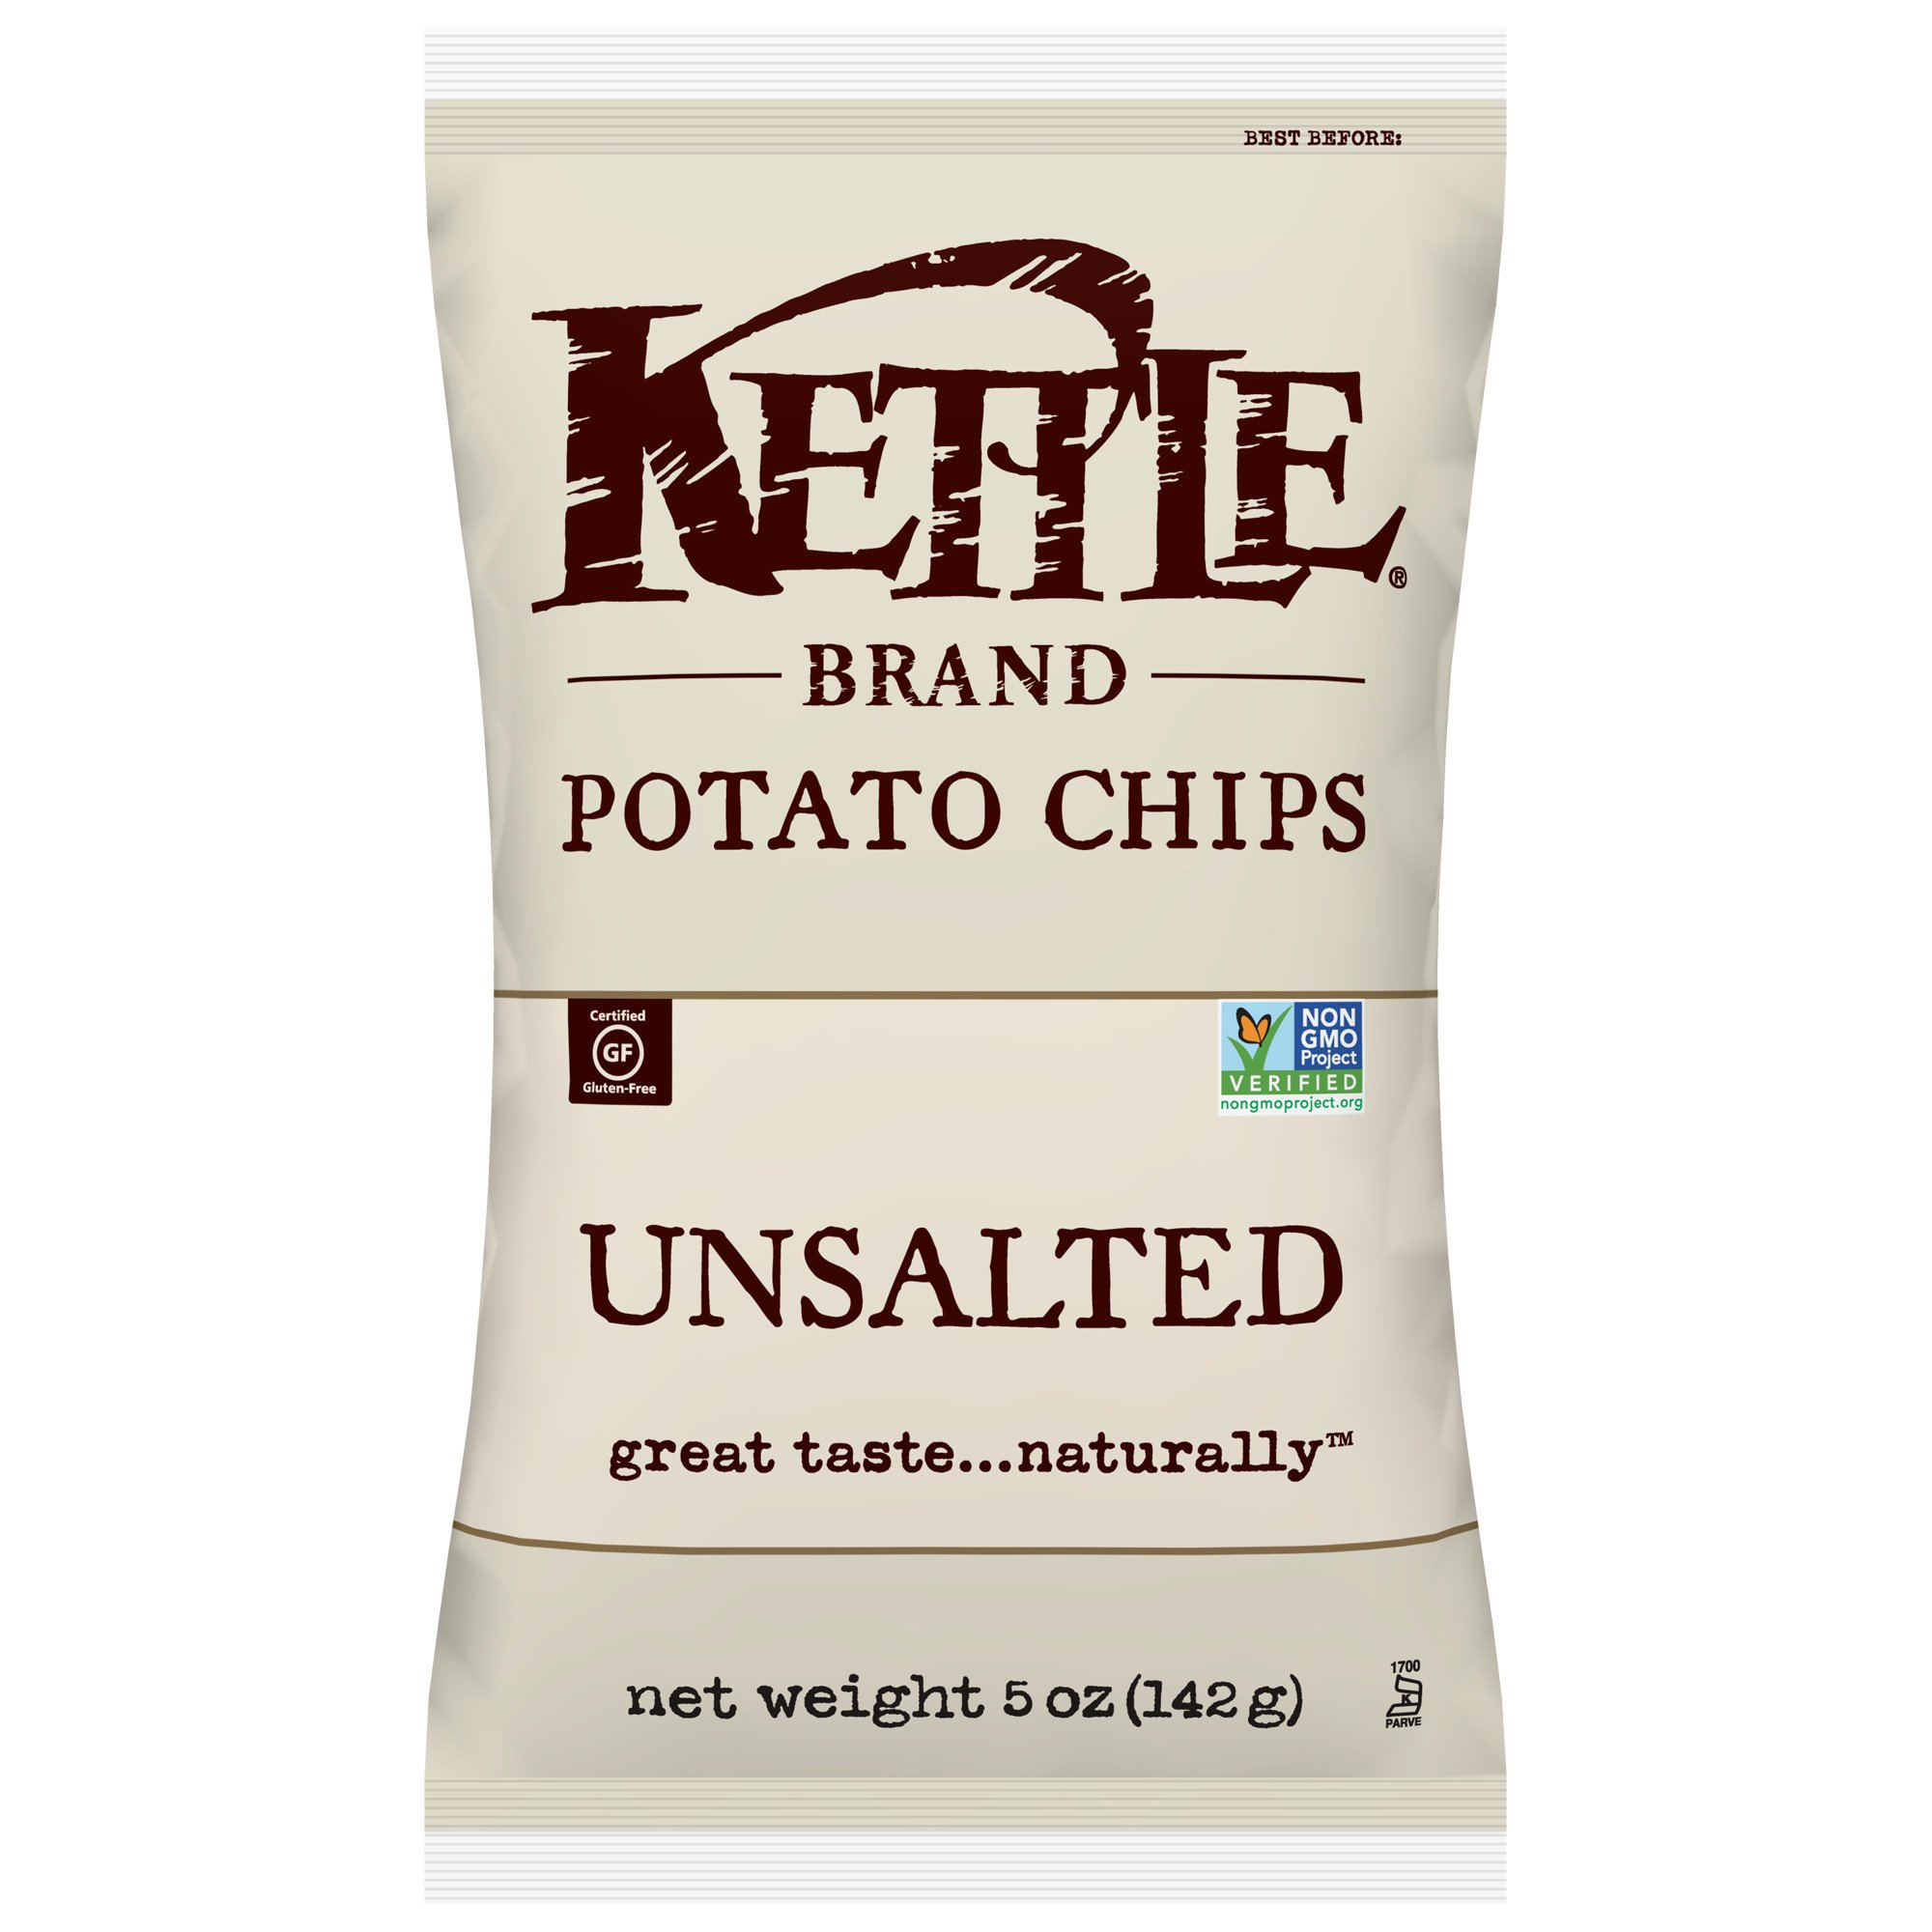 Kettle Brand Potato Chips, Unsalted, 5 Ounce Bags (Pack of 15) by Kettle Brand